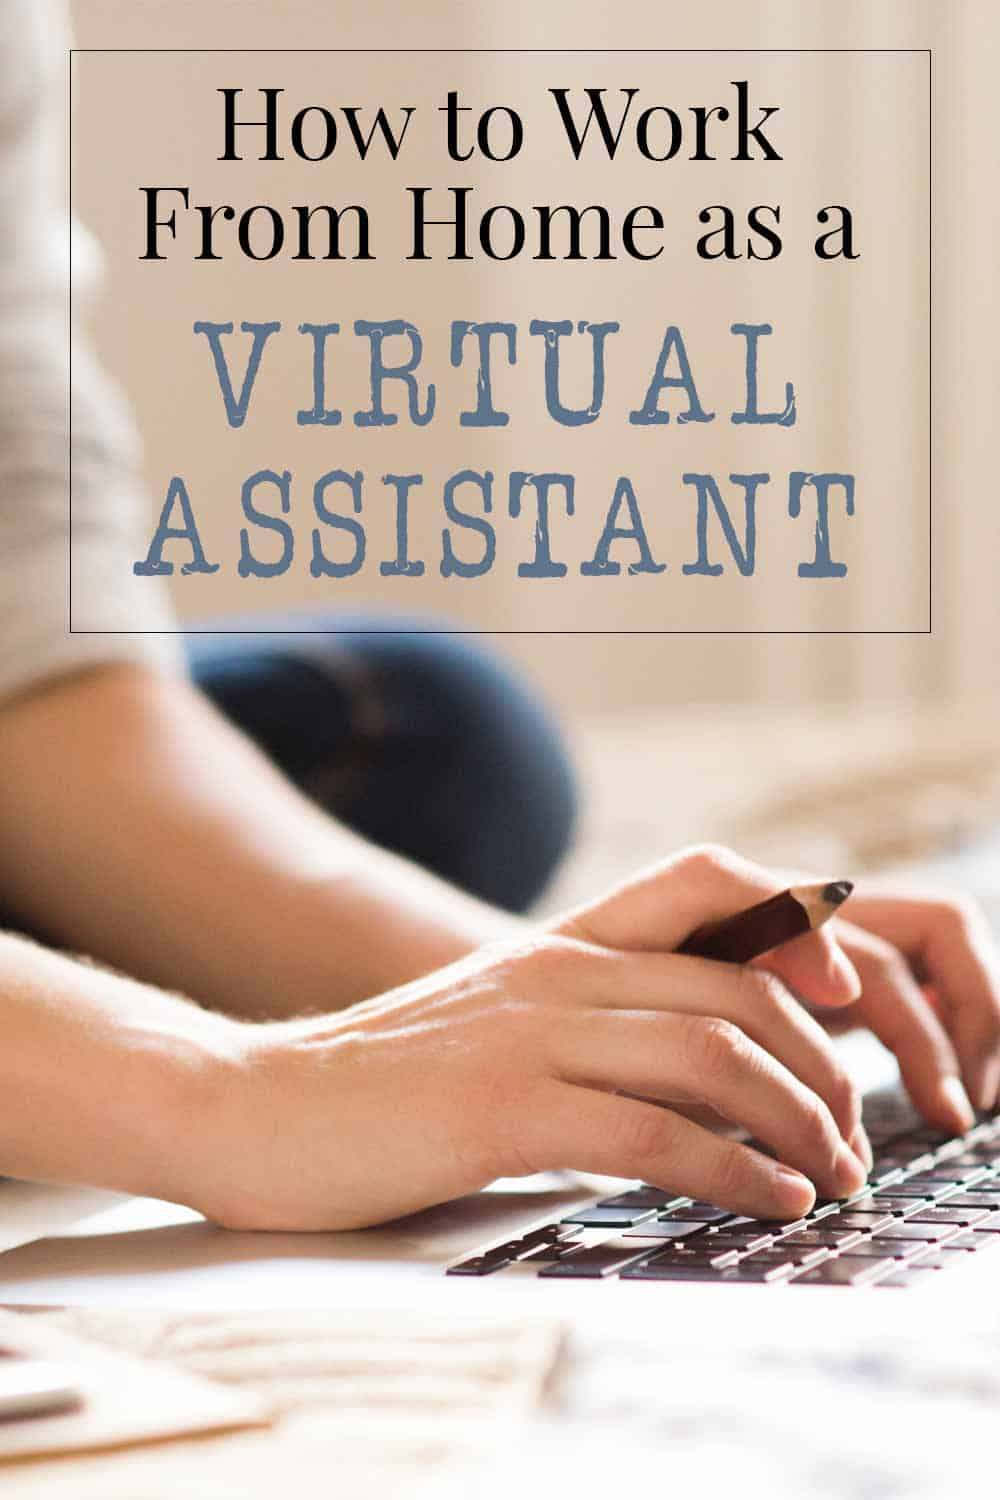 how to work from home as a virtual assistant, woman working on laptop in bed with cell phone beside her